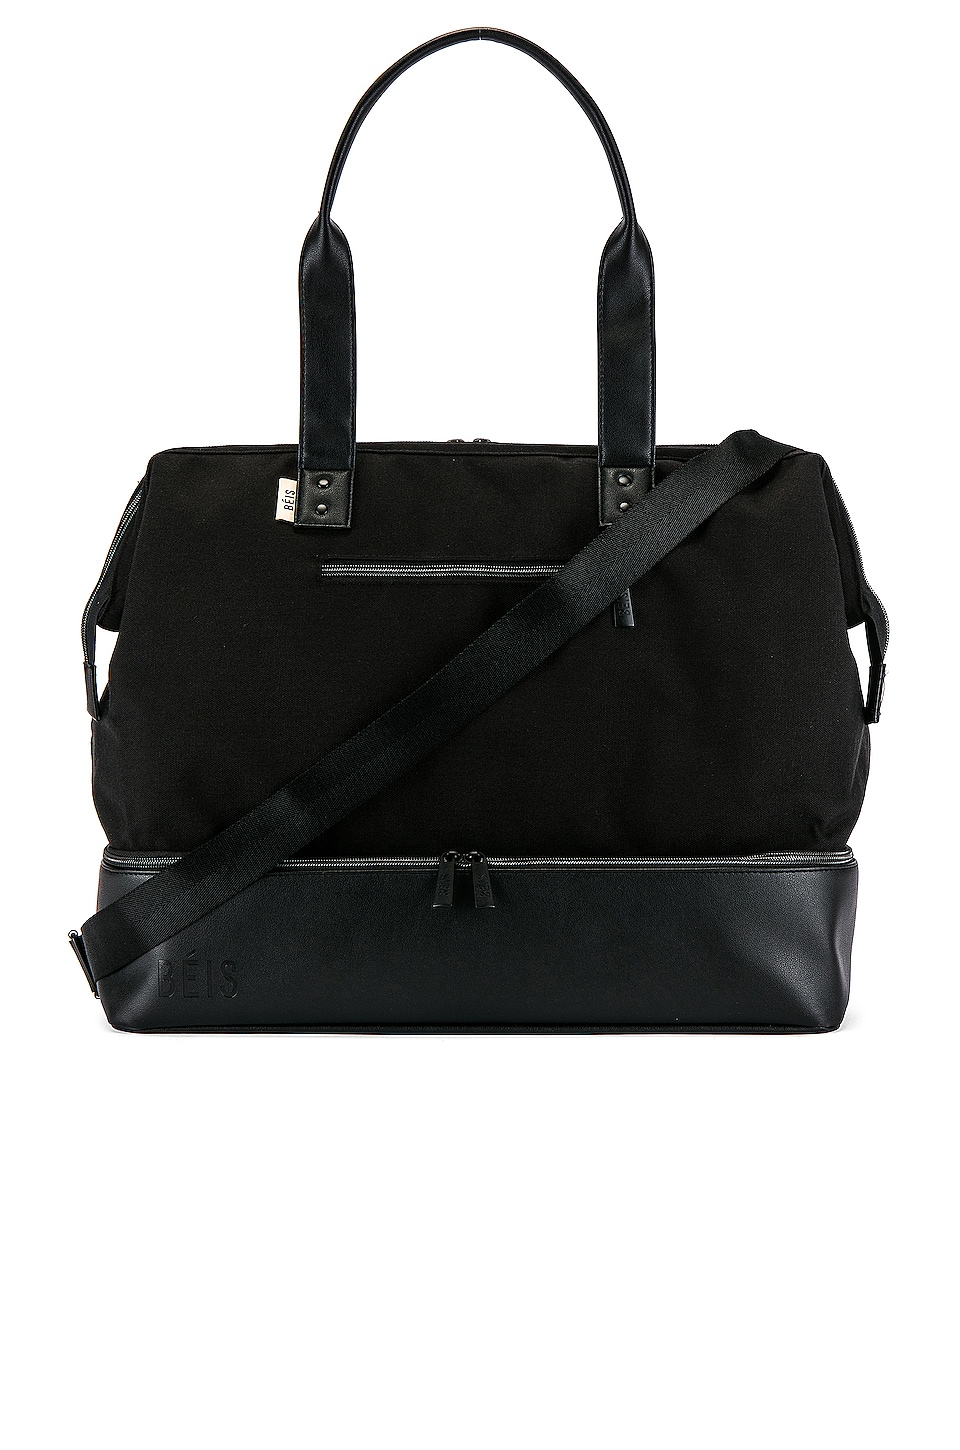 BEIS Weekend Bag in Black